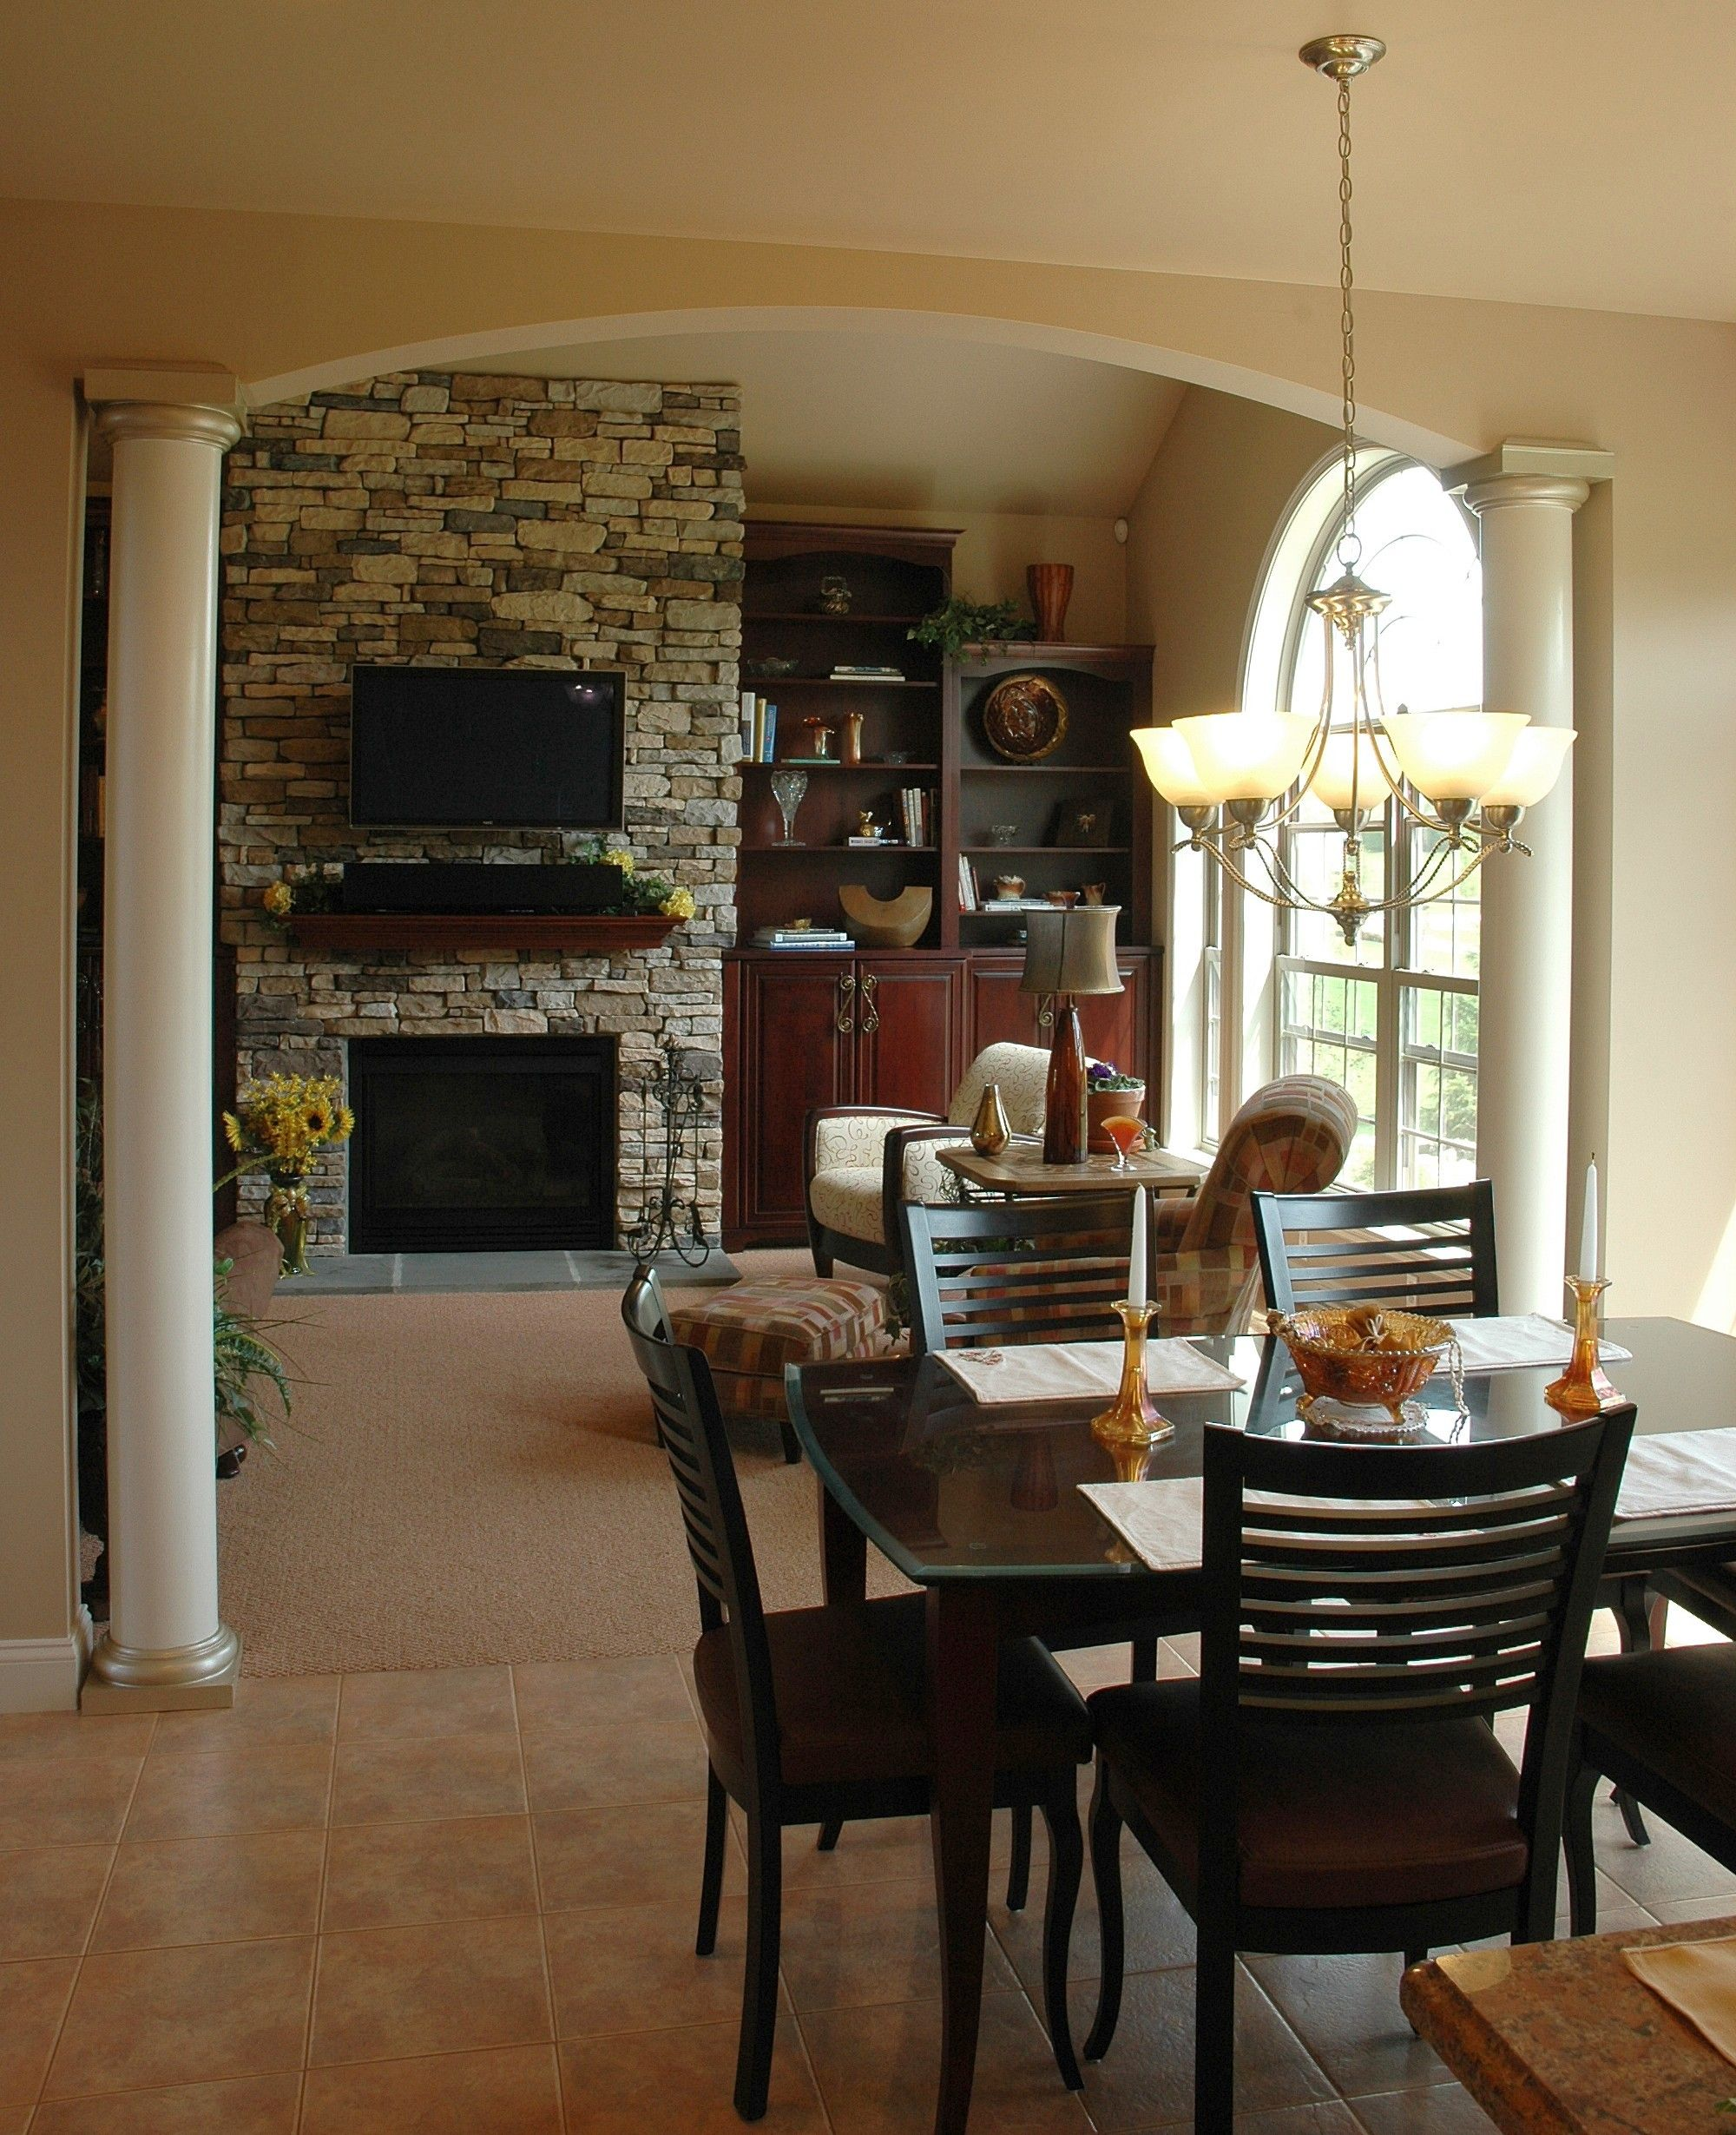 Handmade Kitchen Living Dining Room Remodel By Northwind: An Open Layout Allows You To Look In Towards The Family